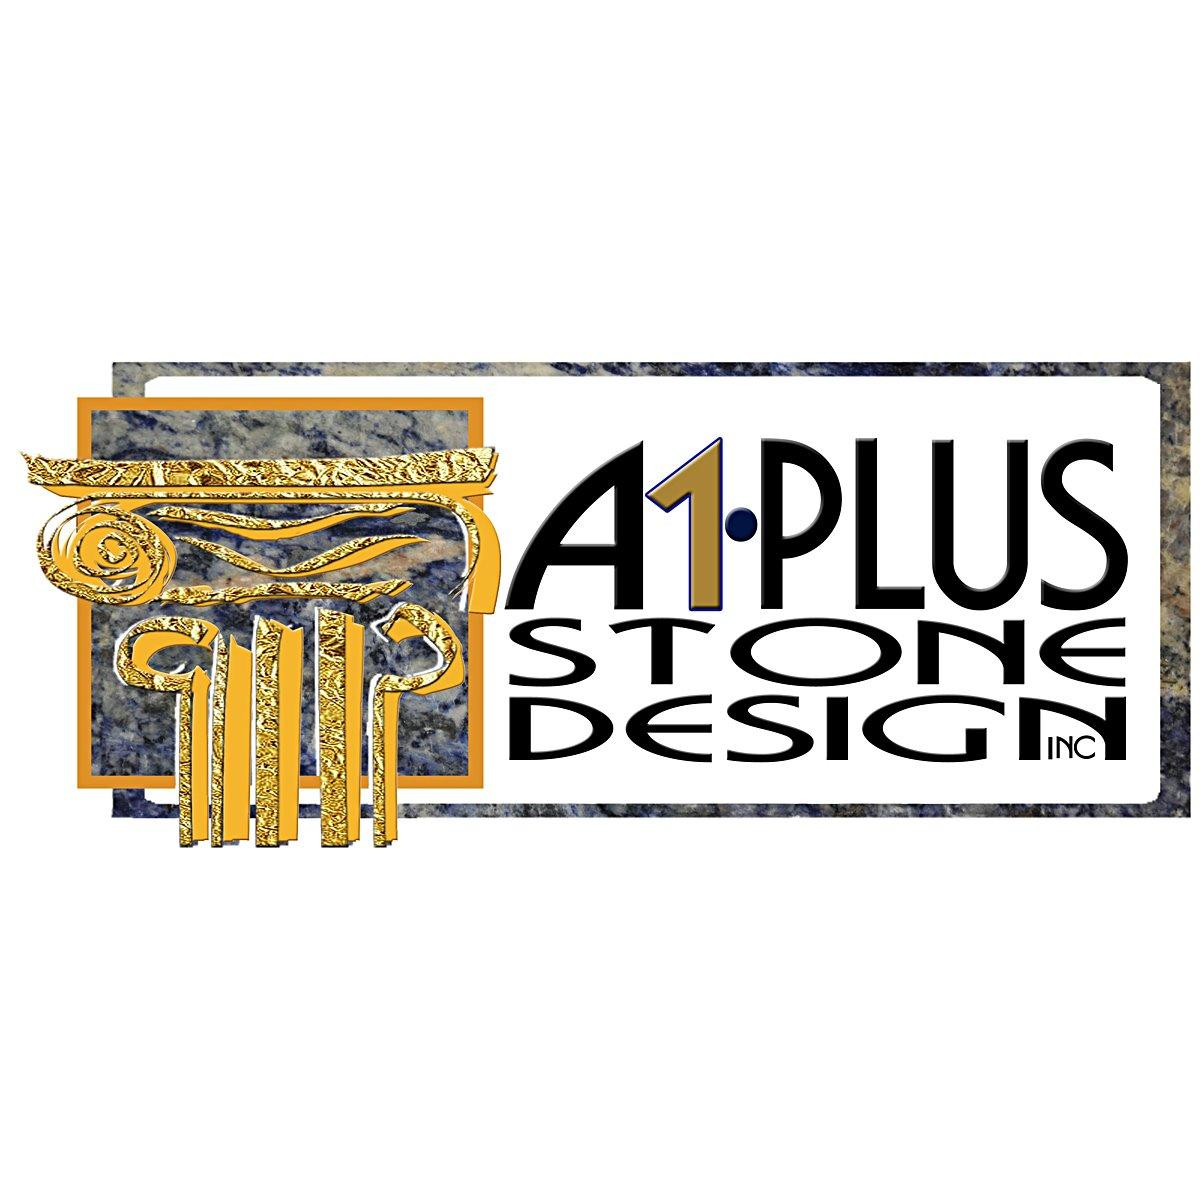 A 1 Plus Stone Design Inc